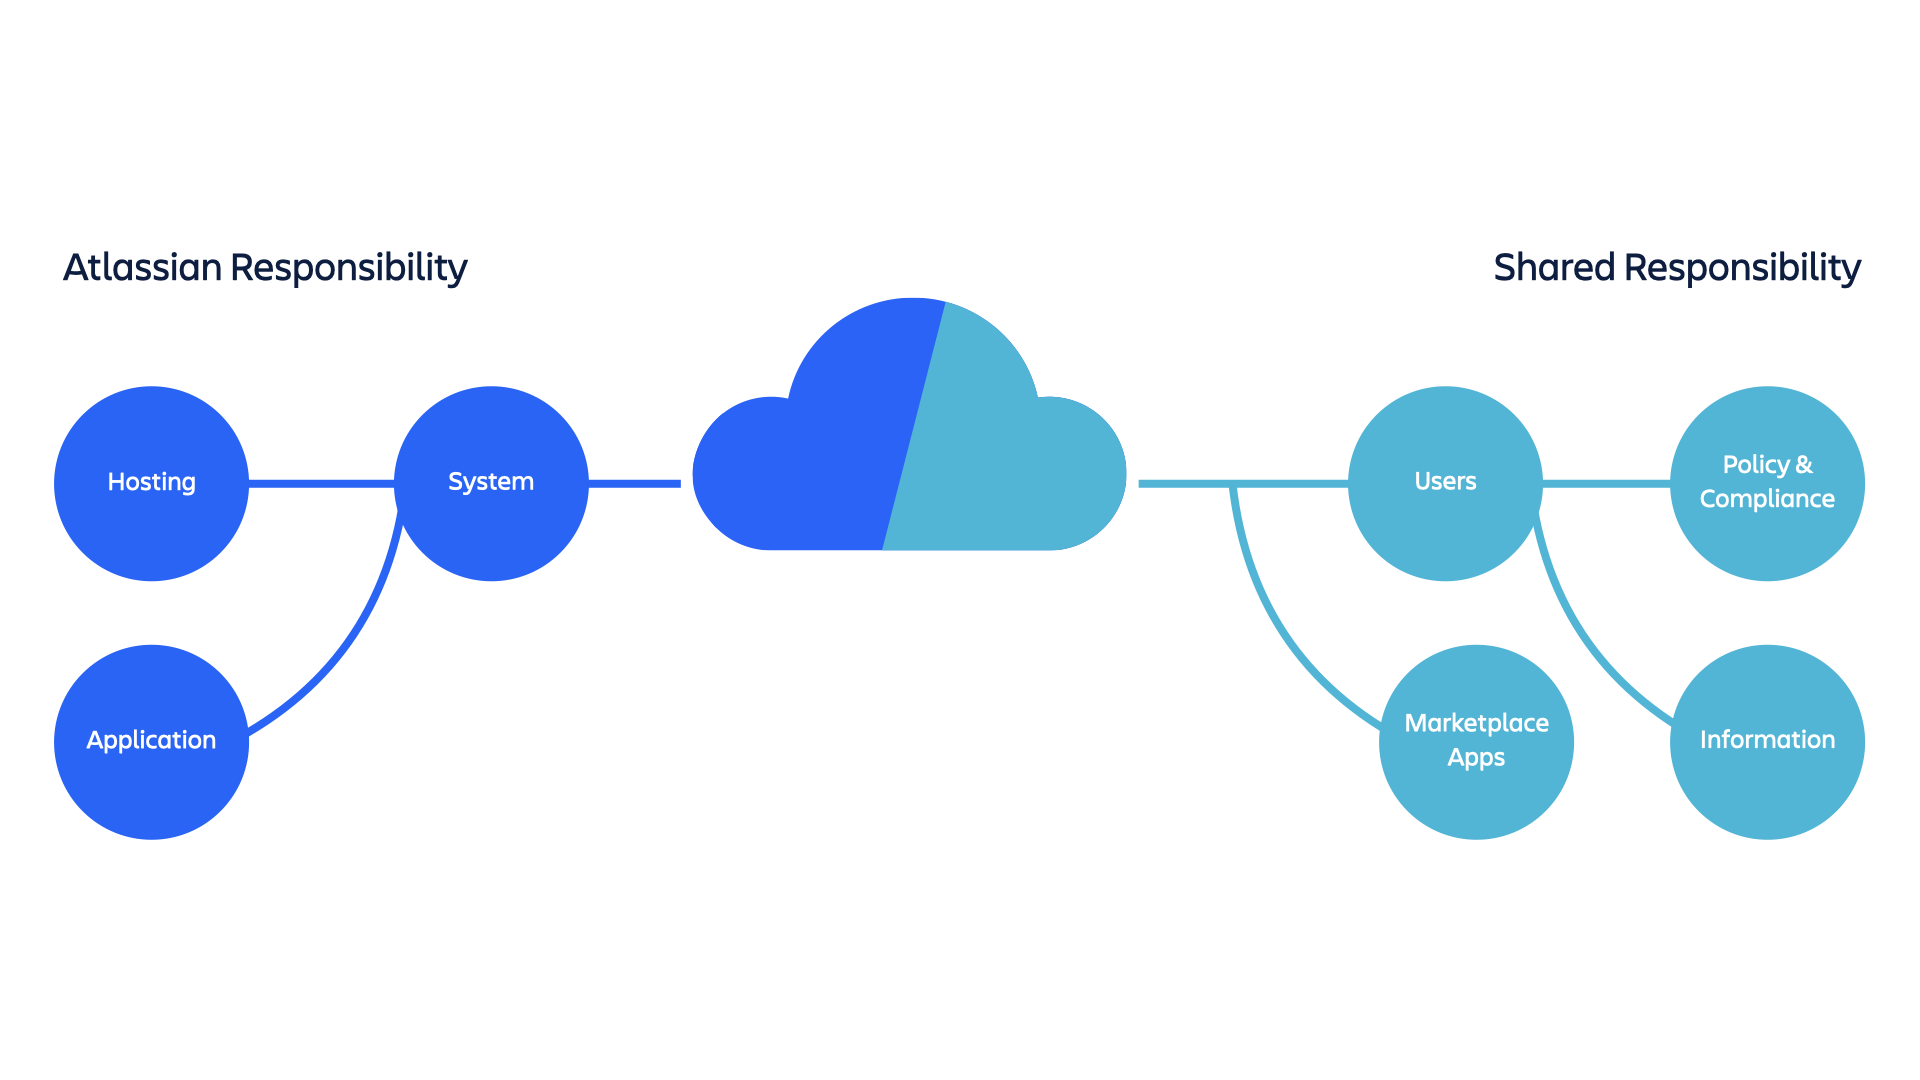 Diagram of Atlassian Responsibility and Shared Responsibility